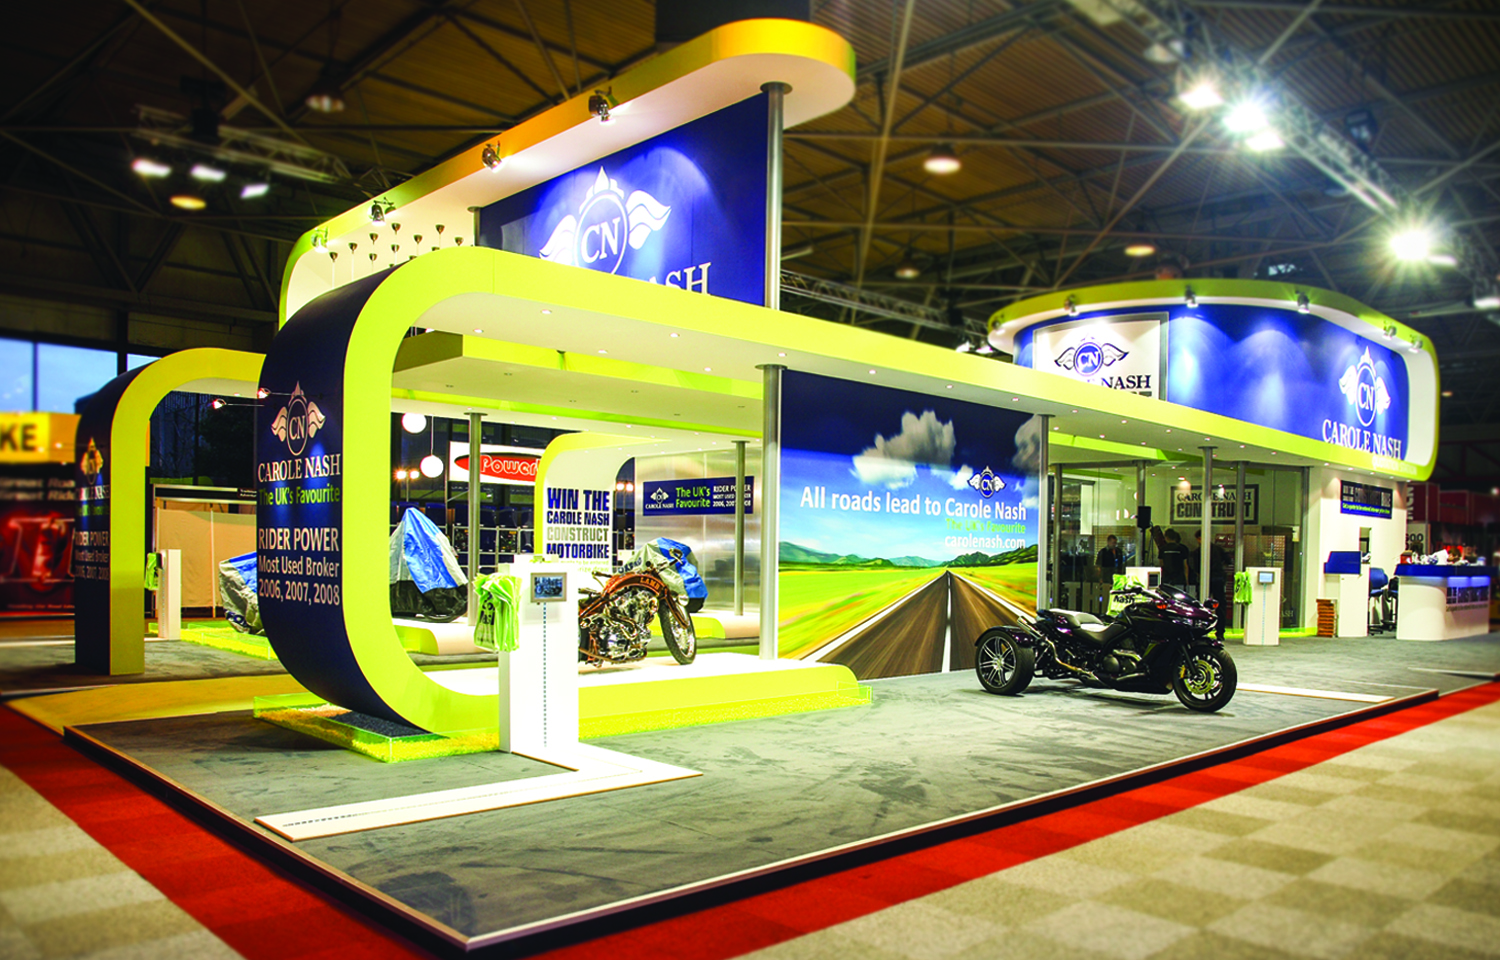 Bespoke tradeshow exhibition stand design and build for Carole Nash Motorcycle Live 2008 Birmingham NEC